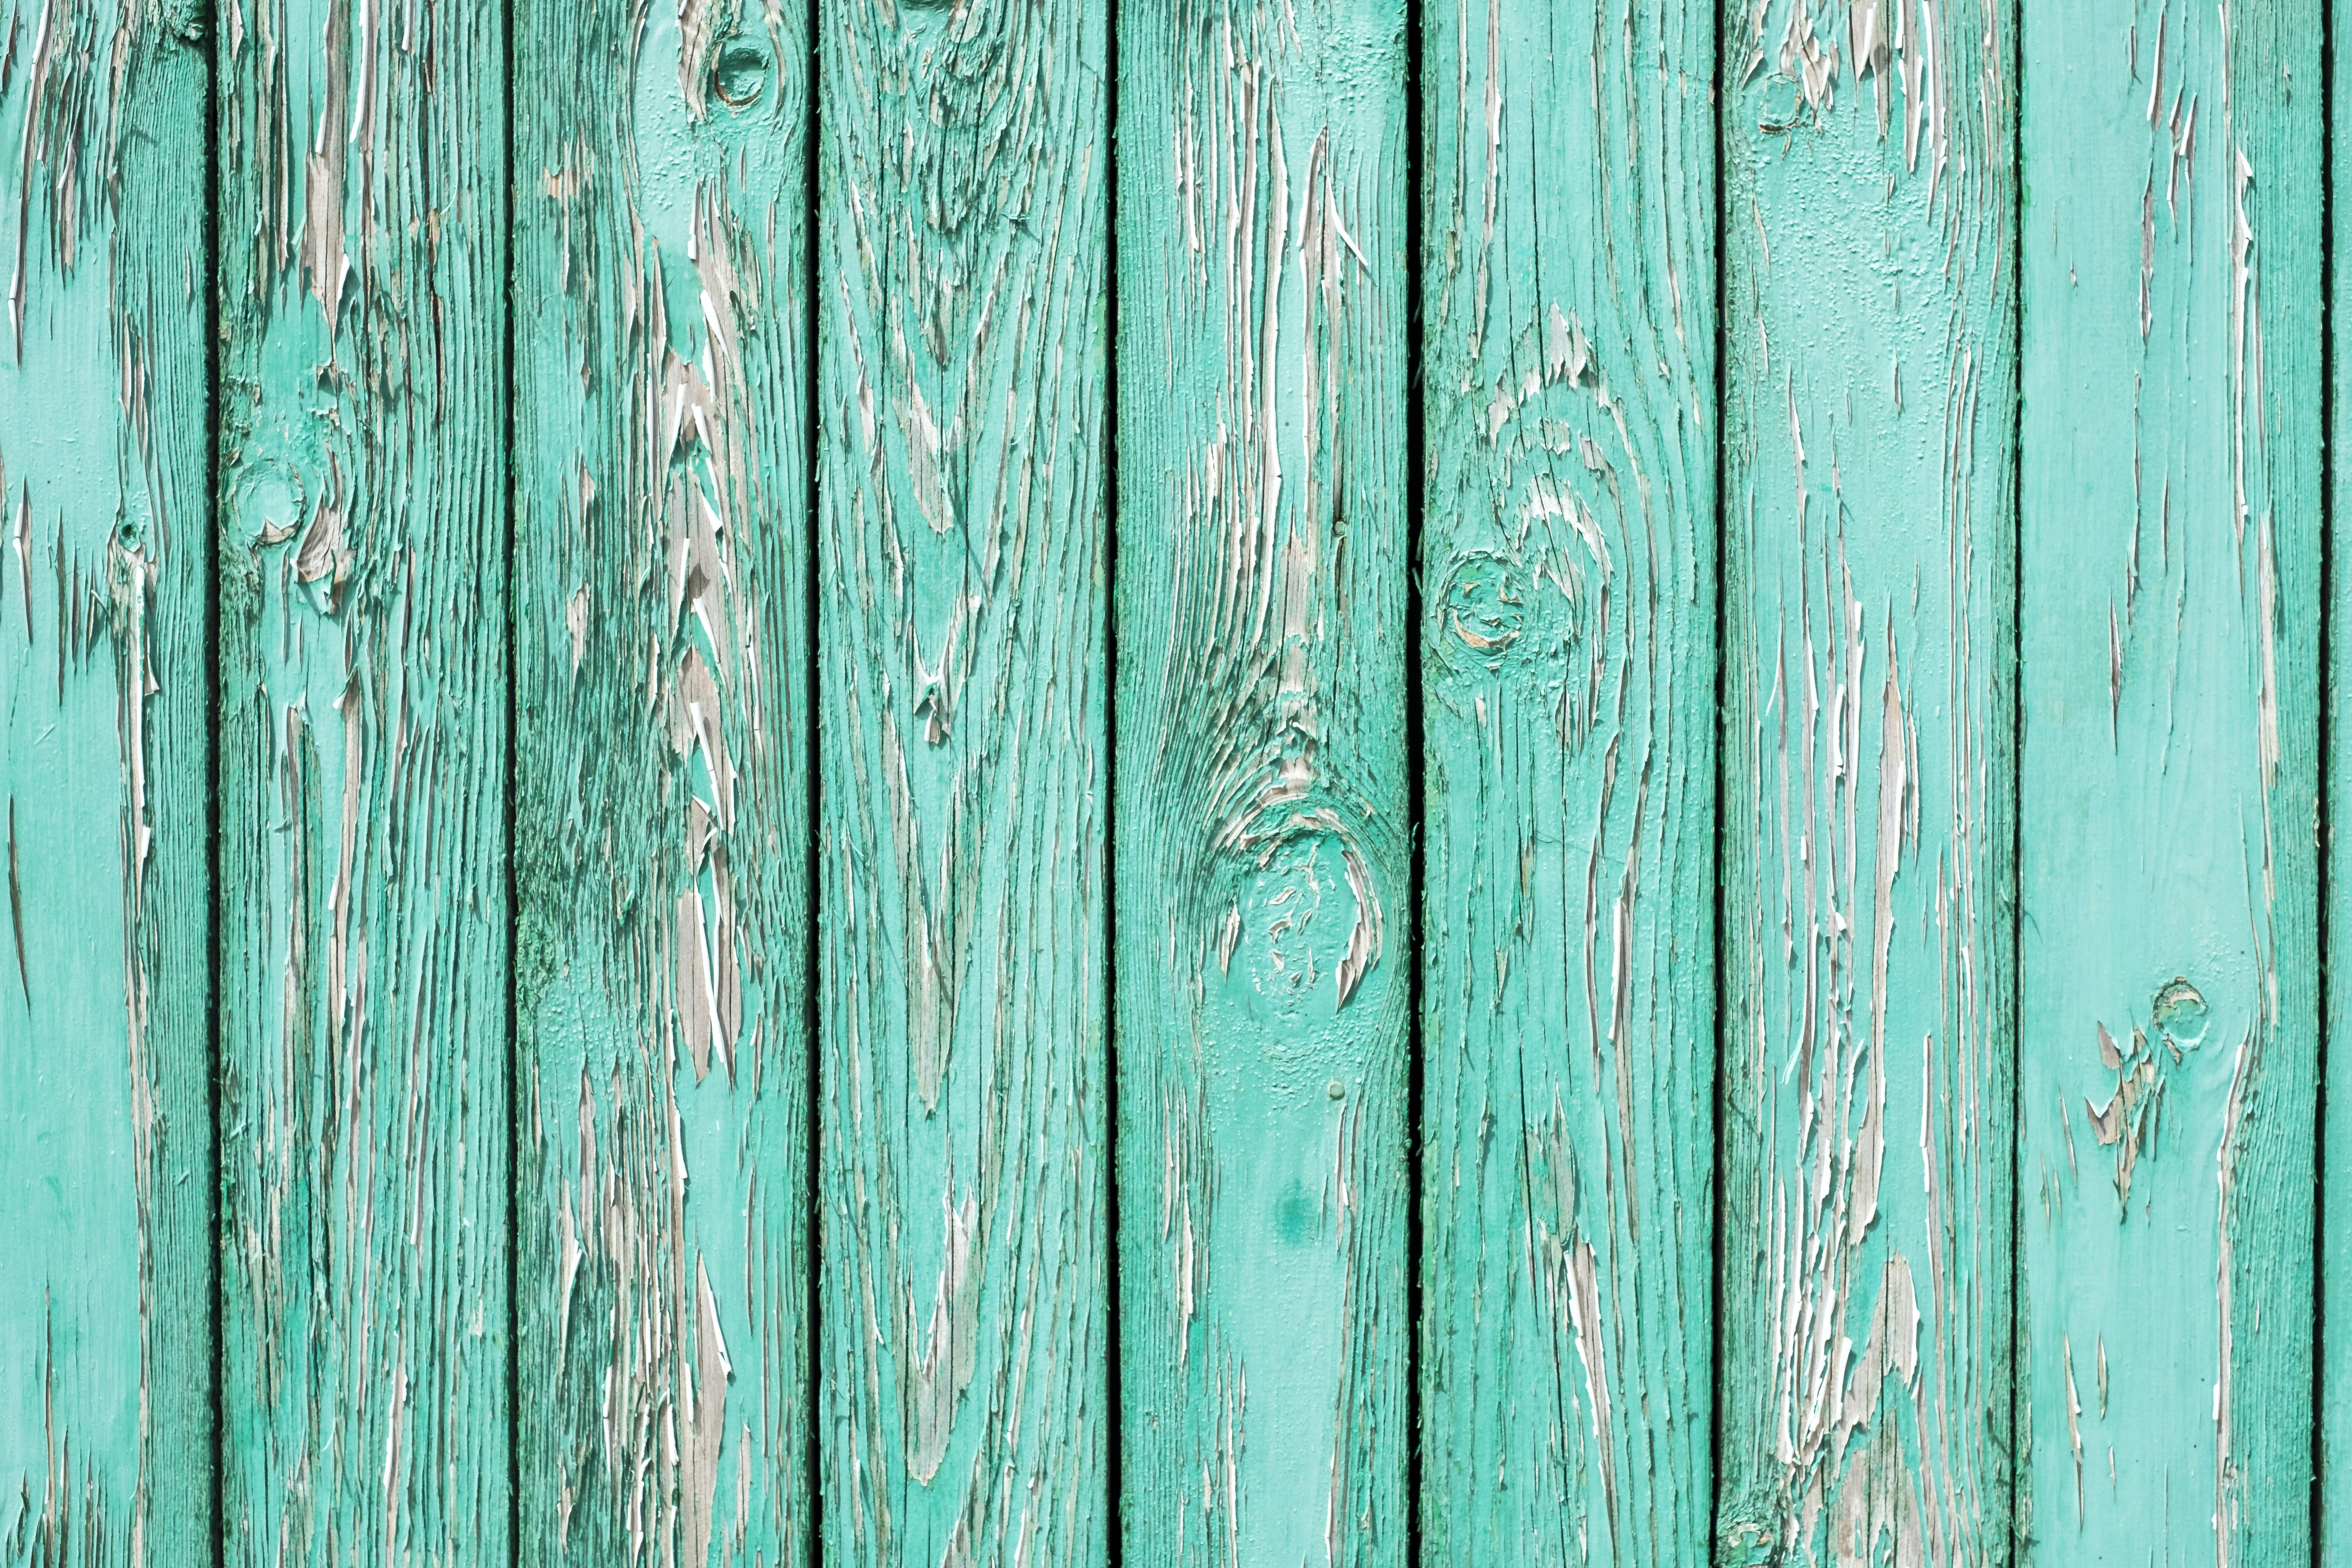 Turquoise Wooden Wall Photo By Maarten Deckers